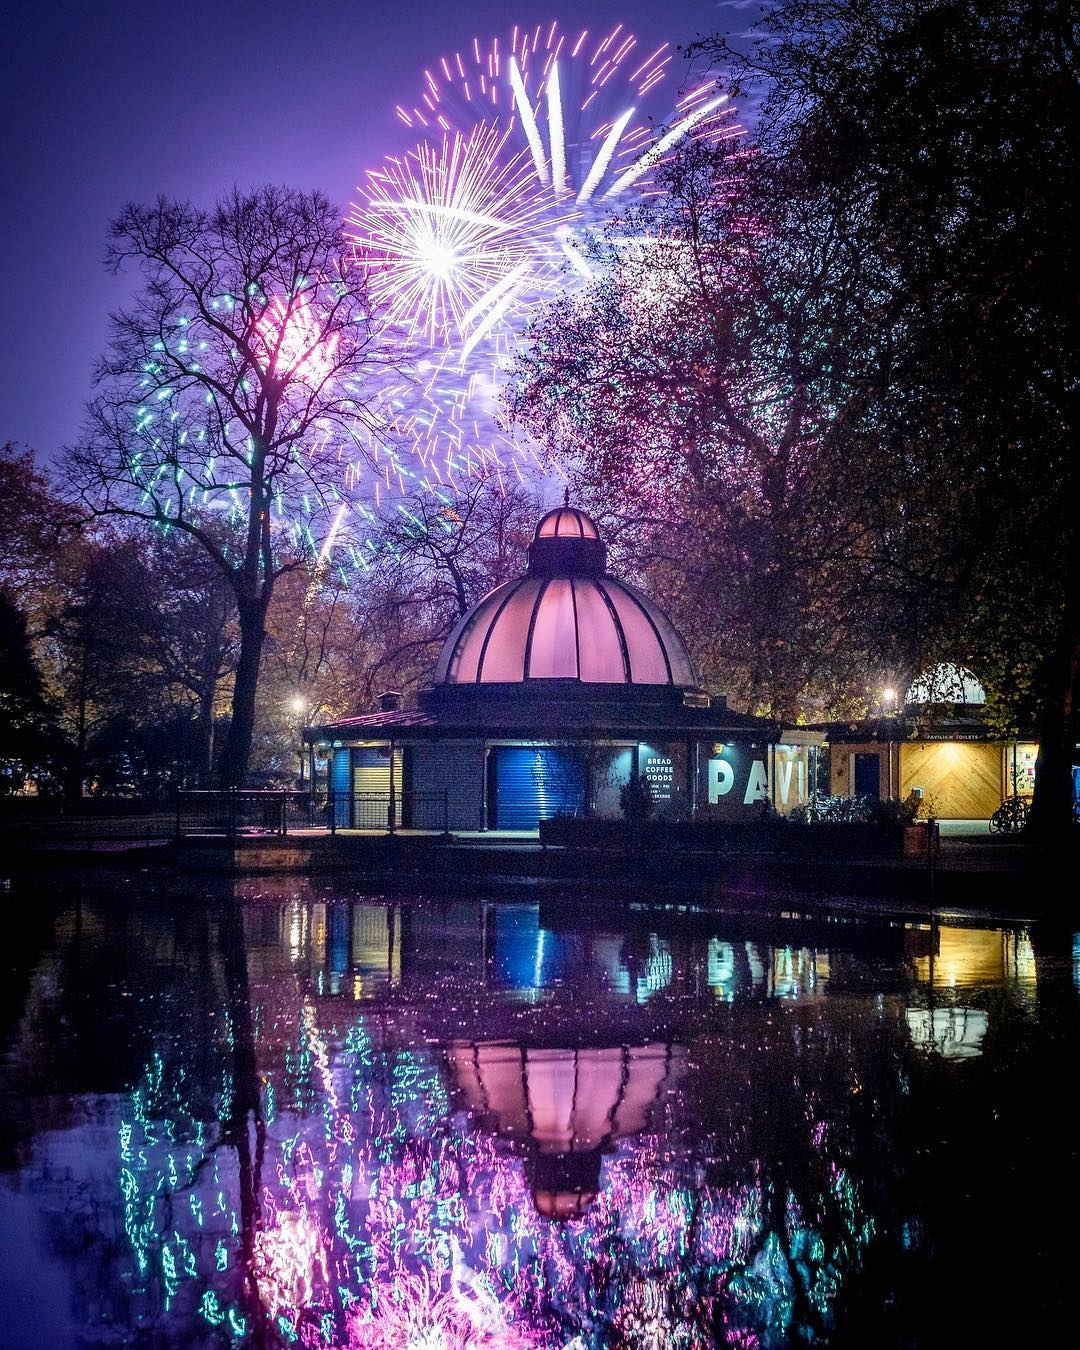 Fireworks reflection in Victoria Park London